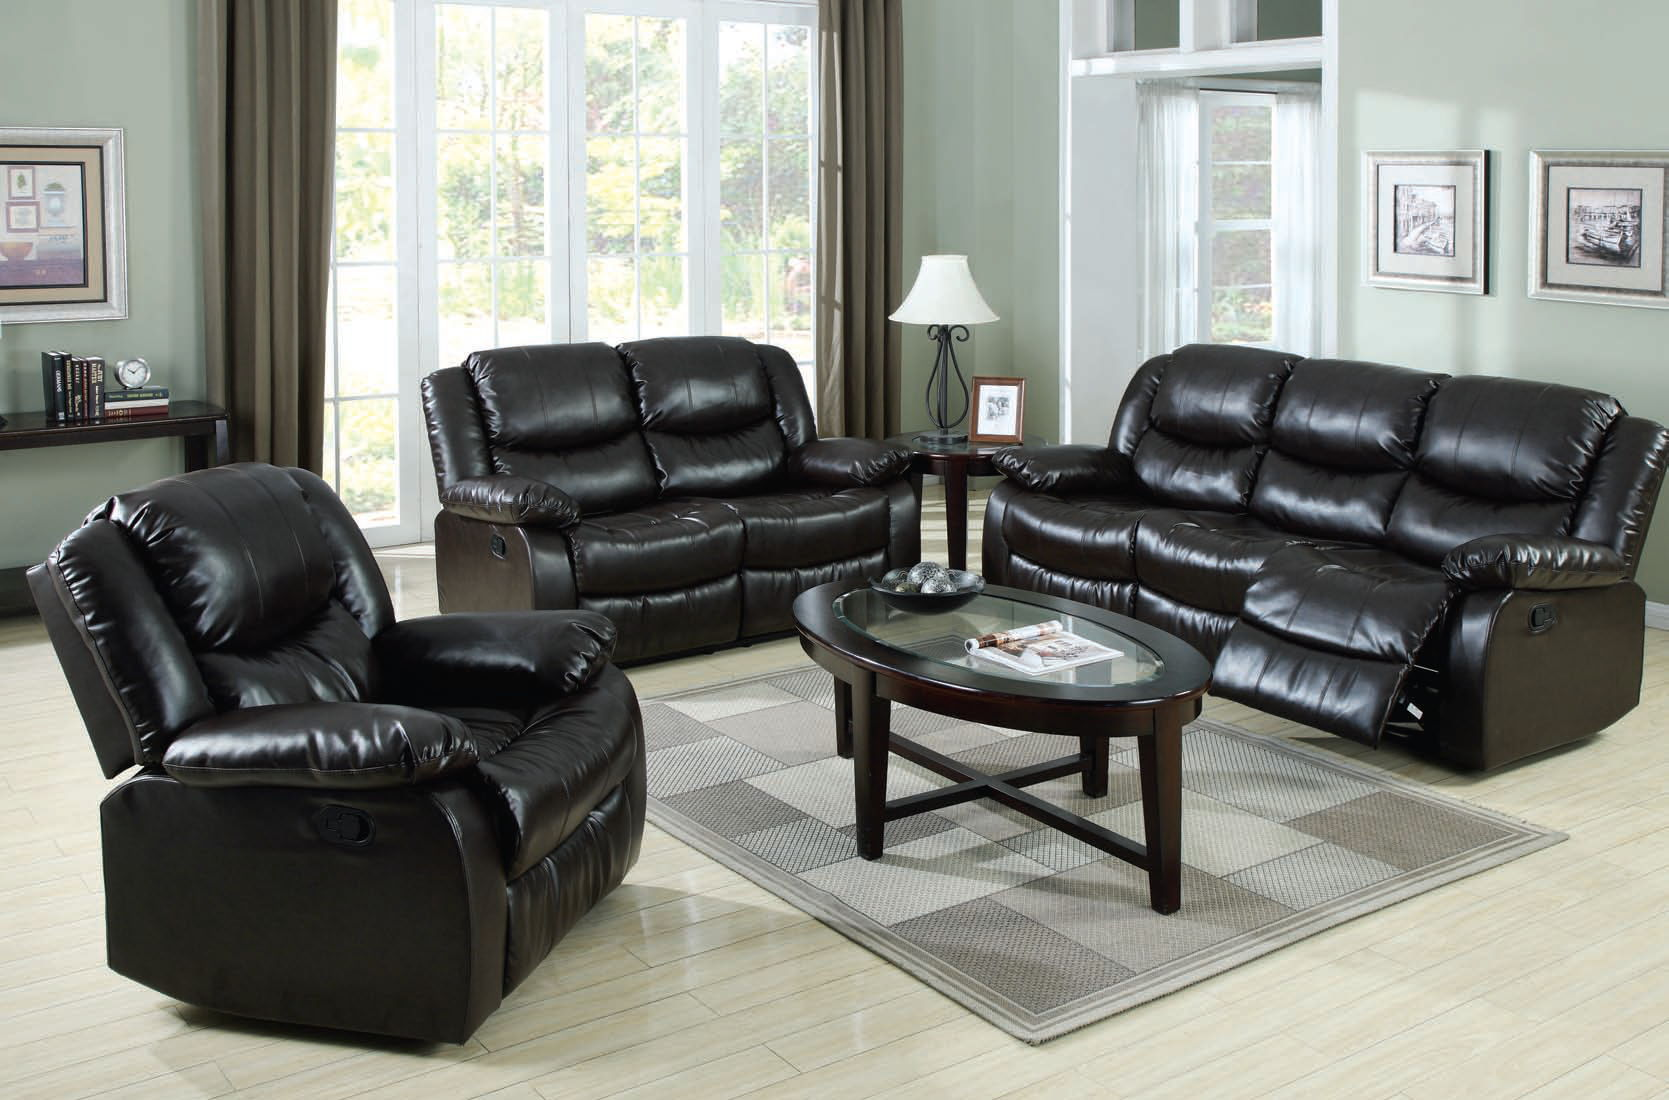 Fullerton Espresso Leather Living Room Sets The Classy Home